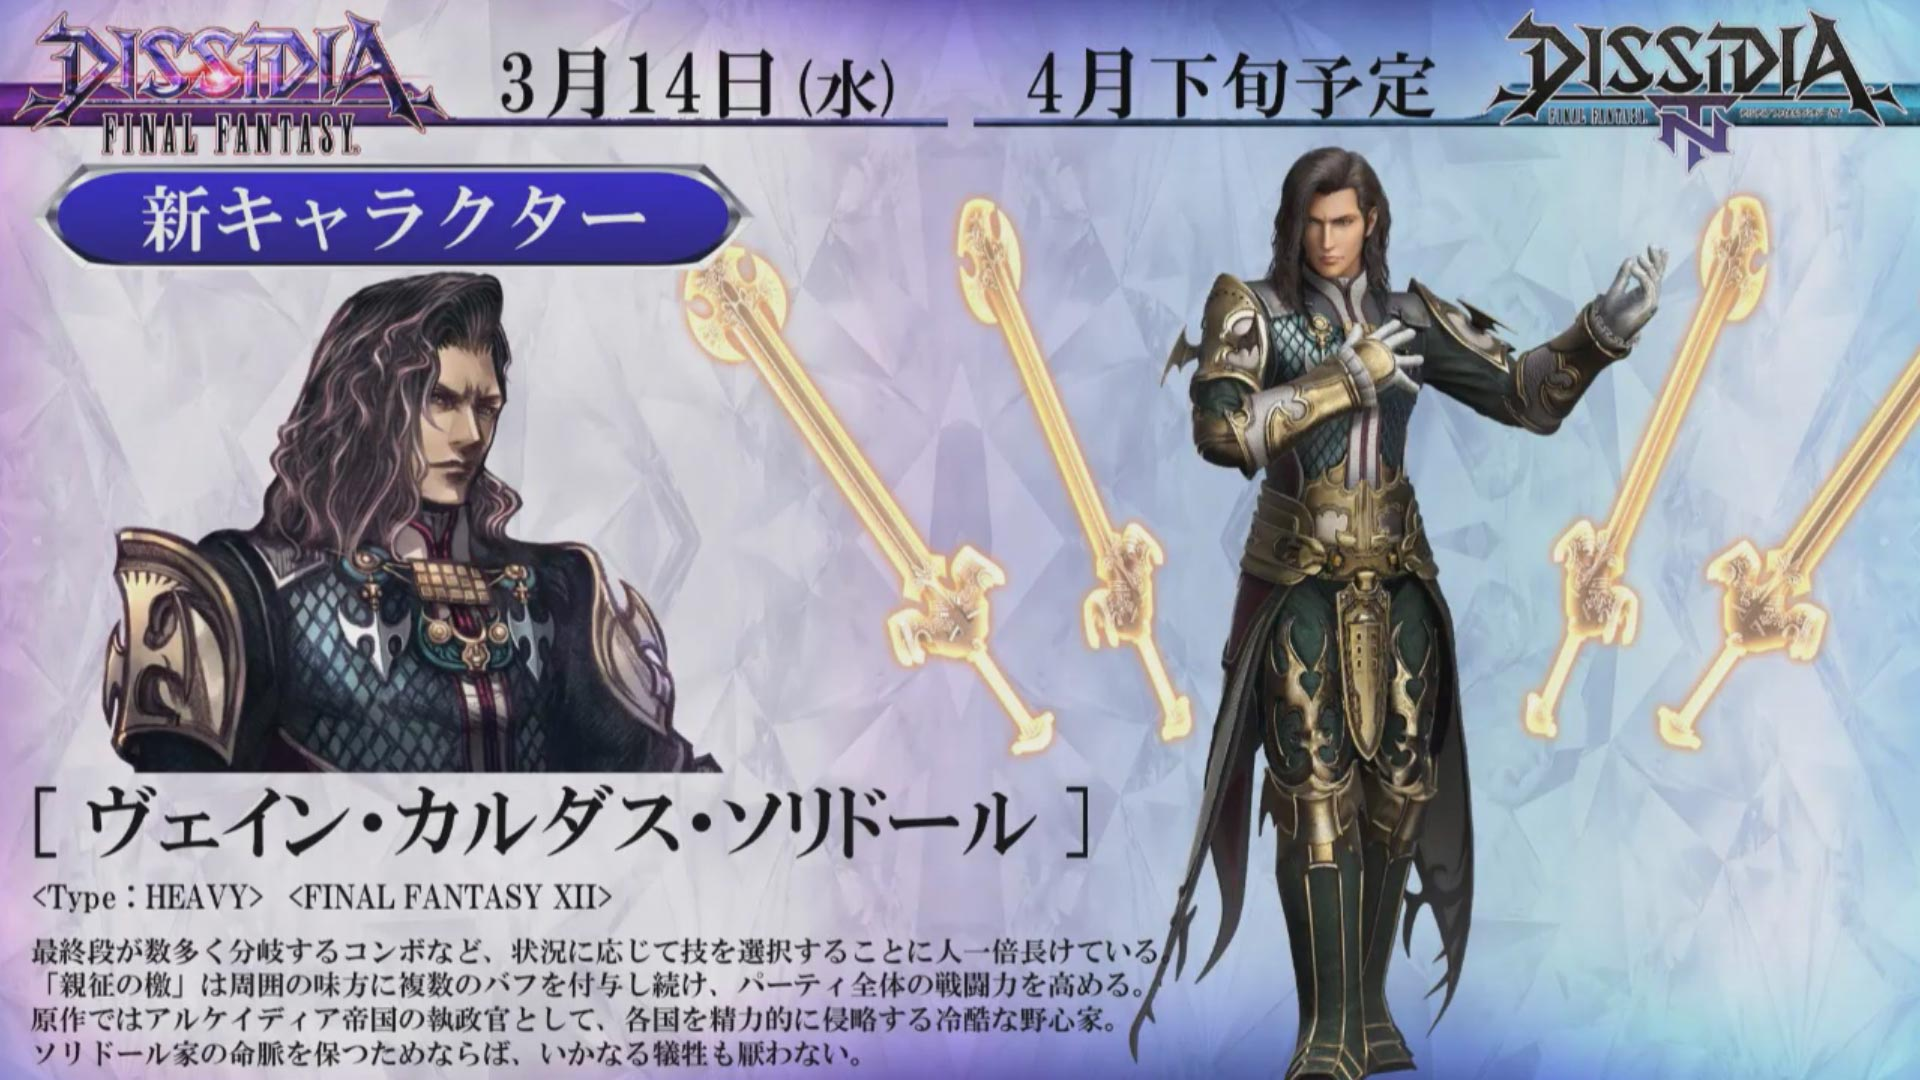 Dissidia Final Fantasy NT Vayne Reveal 10 out of 12 image gallery